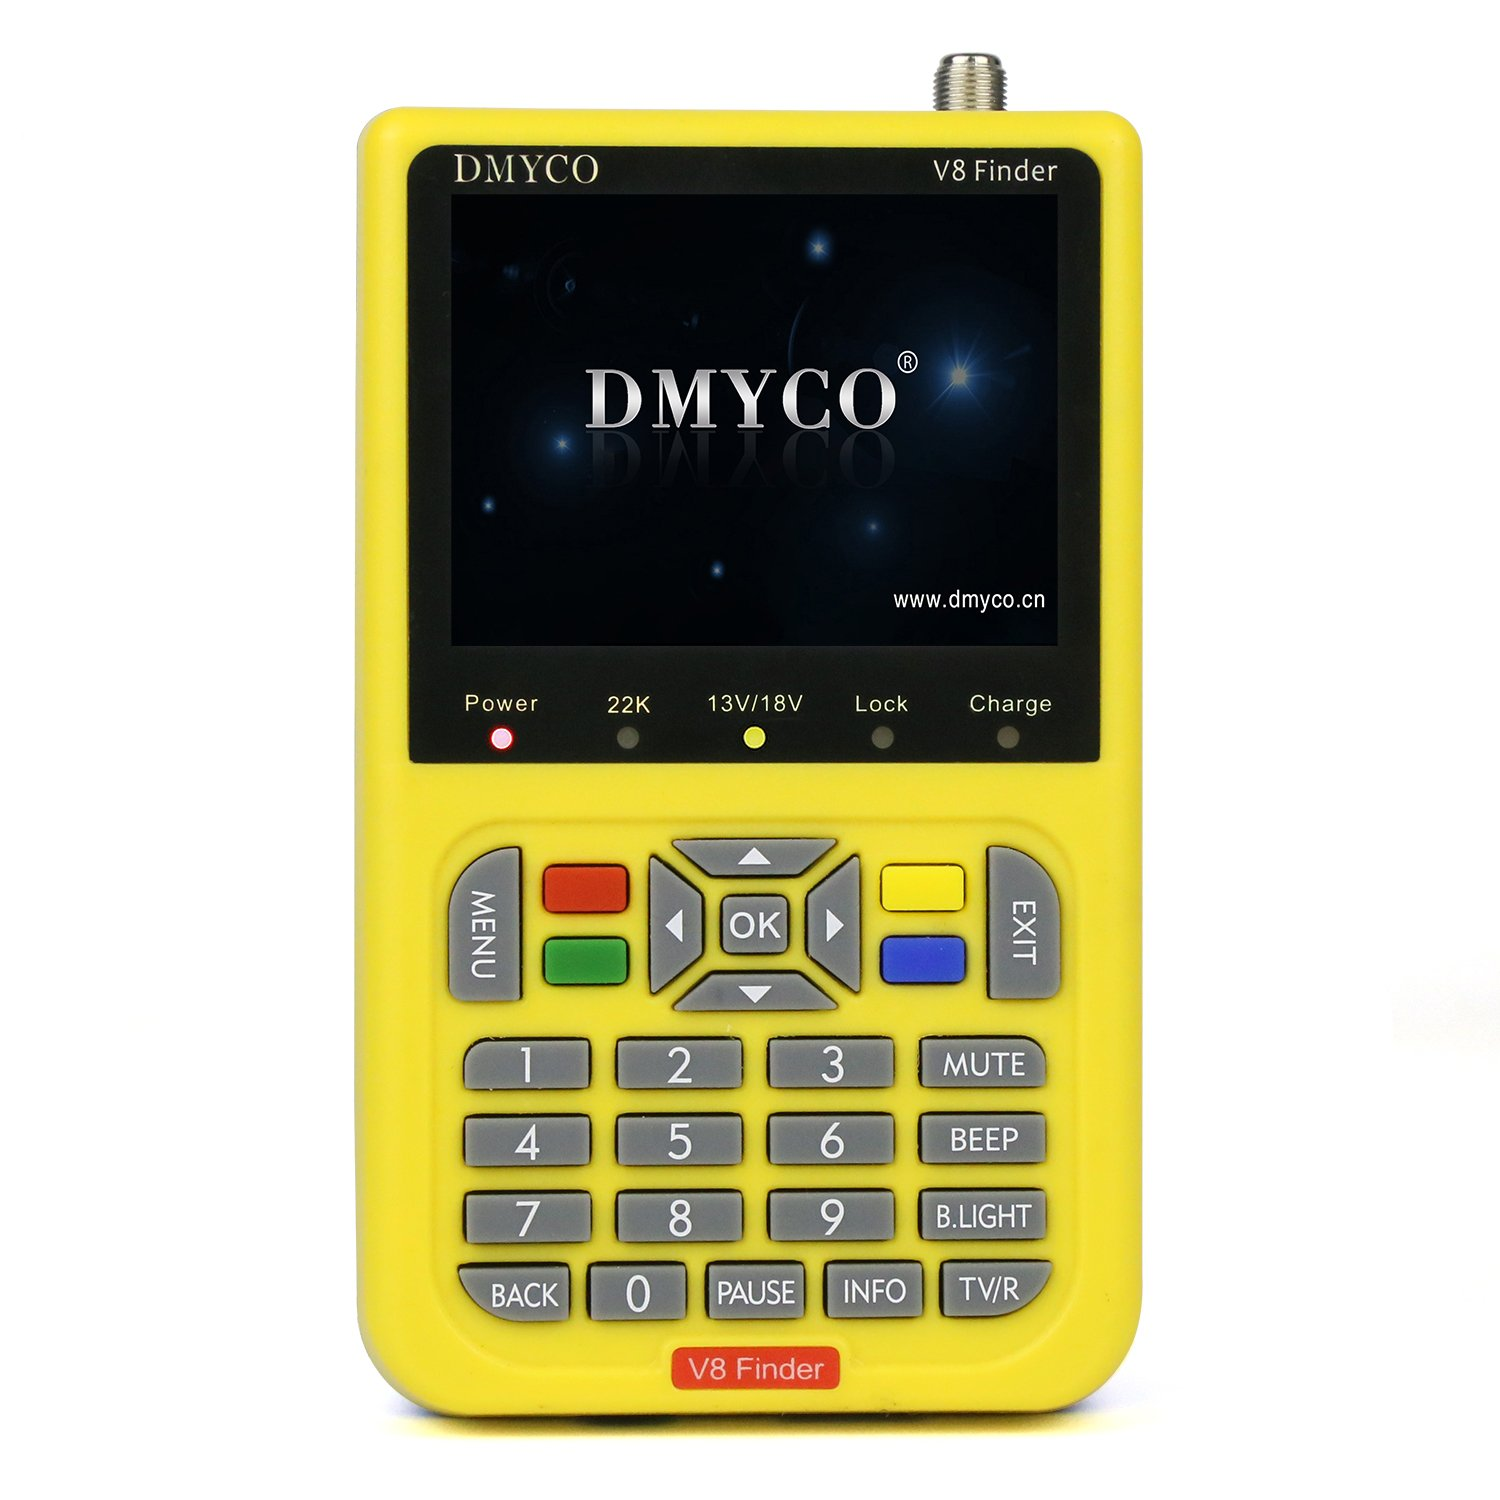 Original DMYCO V8 Signal Finder Free Sat HD 1080P DVB-S/S2 Digital FTA Satellite Signal Meter MPEG-4 Satellite Direct TV Dish Receiver Tool with 3.5 Inch LCD Screen Display